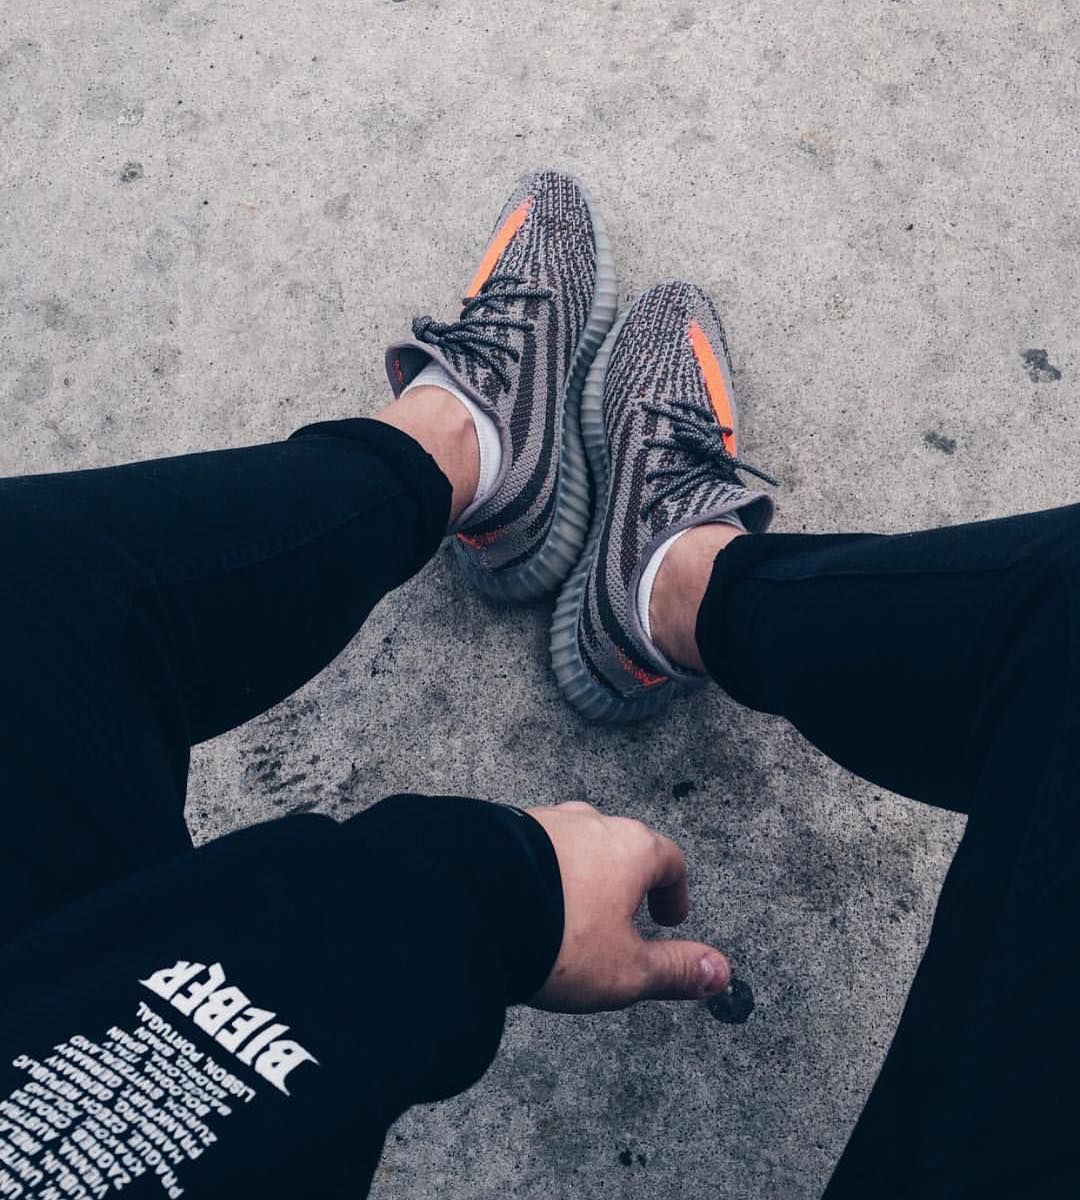 Dope Beluga Yeezy Boost 350 V2 fit How have you been ...